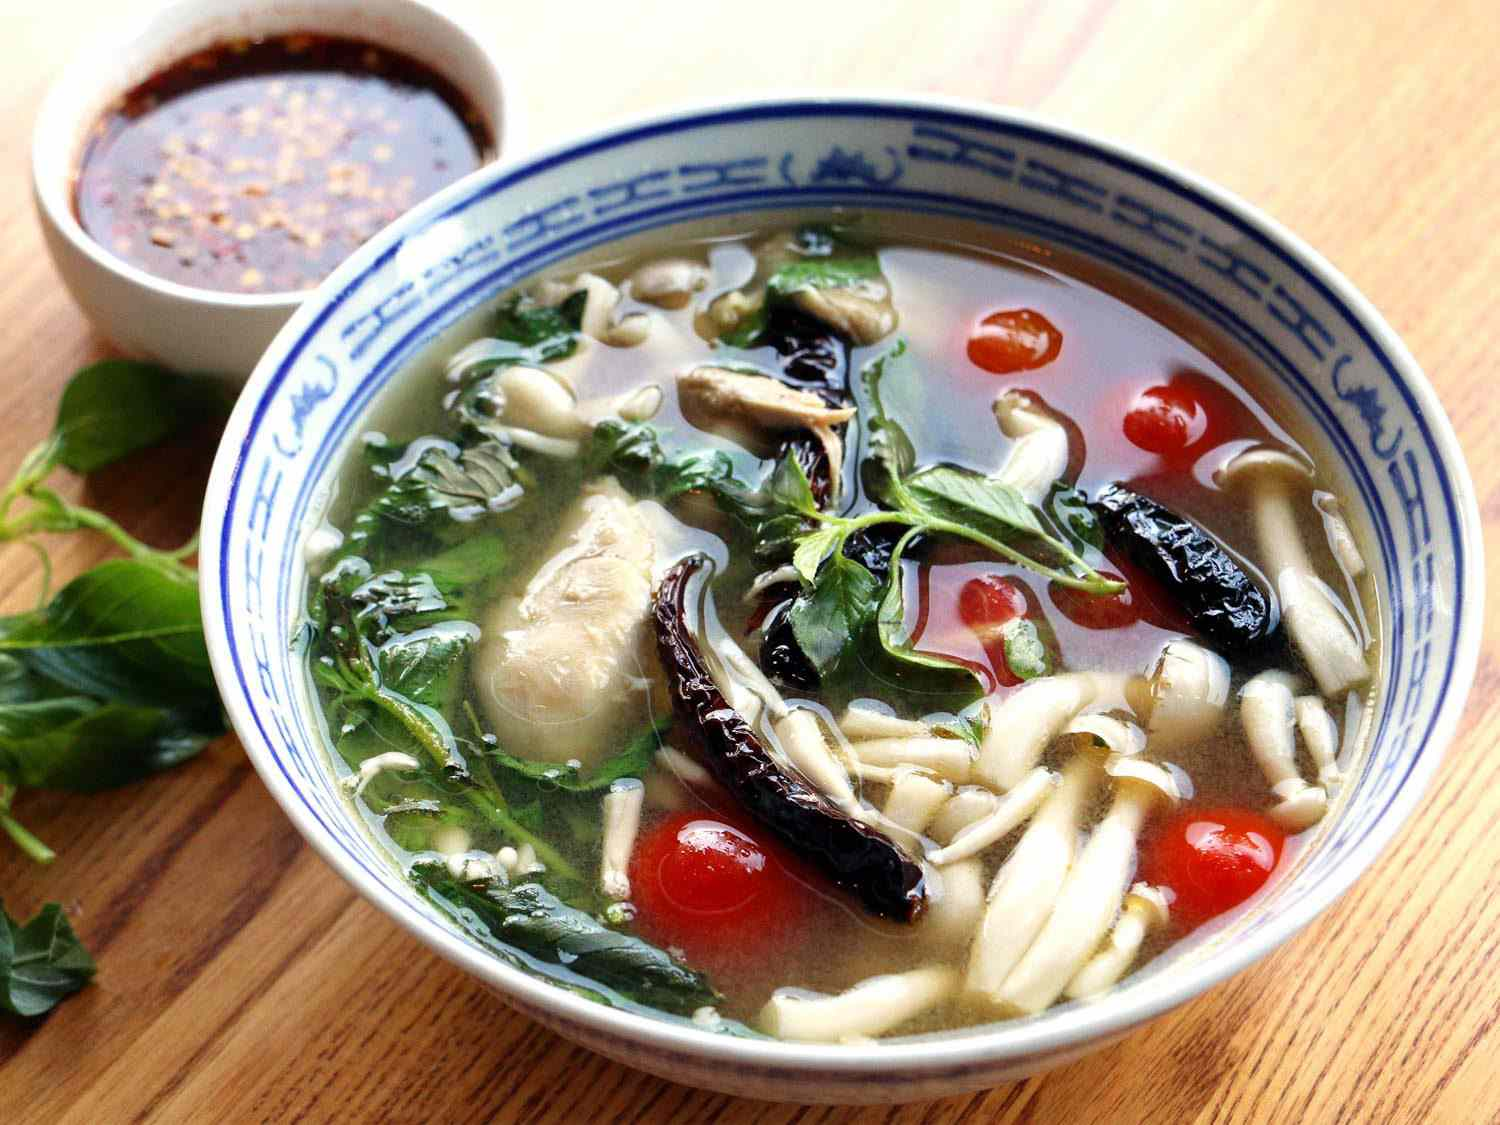 A blue and white bowl of khao soi (wide rice noodles, tomatoes, mushrooms, and greens in a chicken broth) next to a small bowl of chili sauce